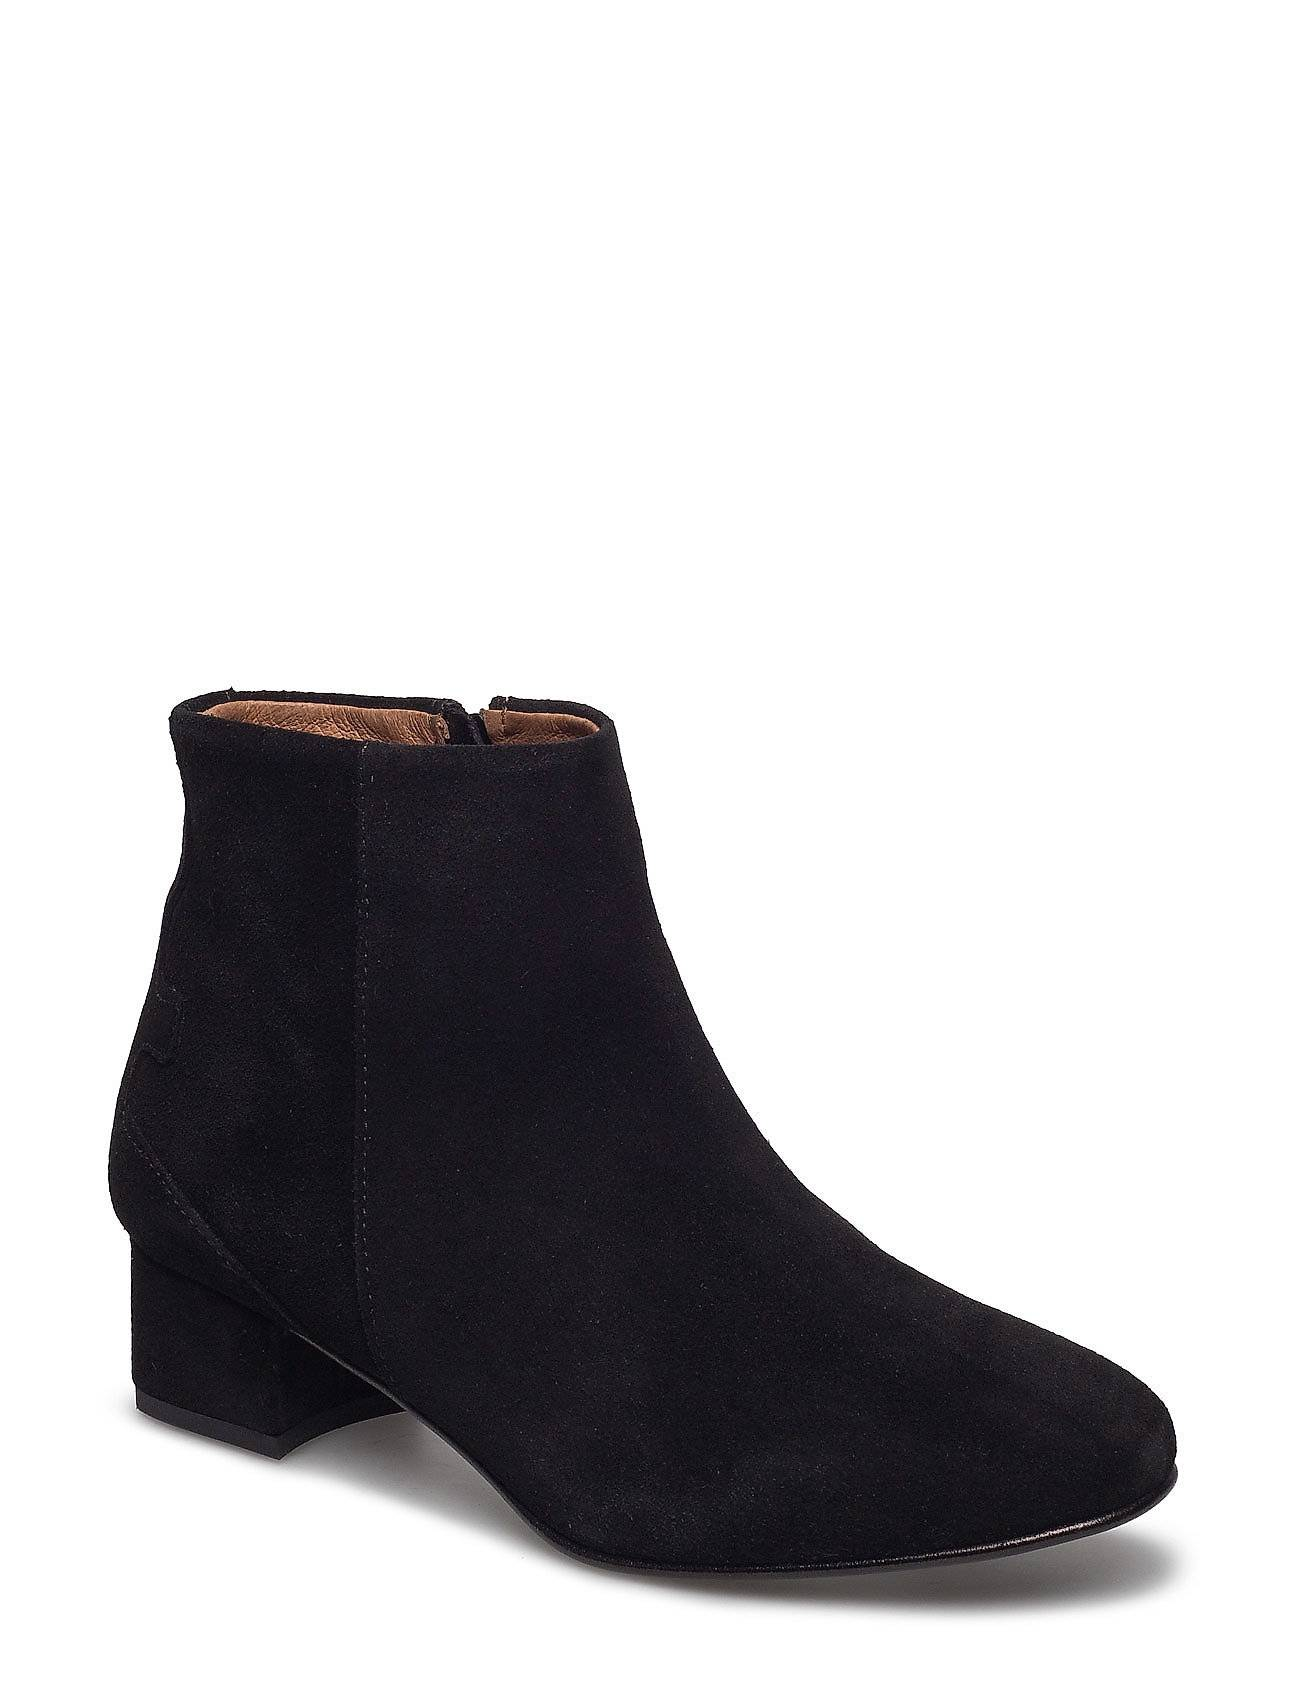 Selected Femme Sfbecky Suede Boot